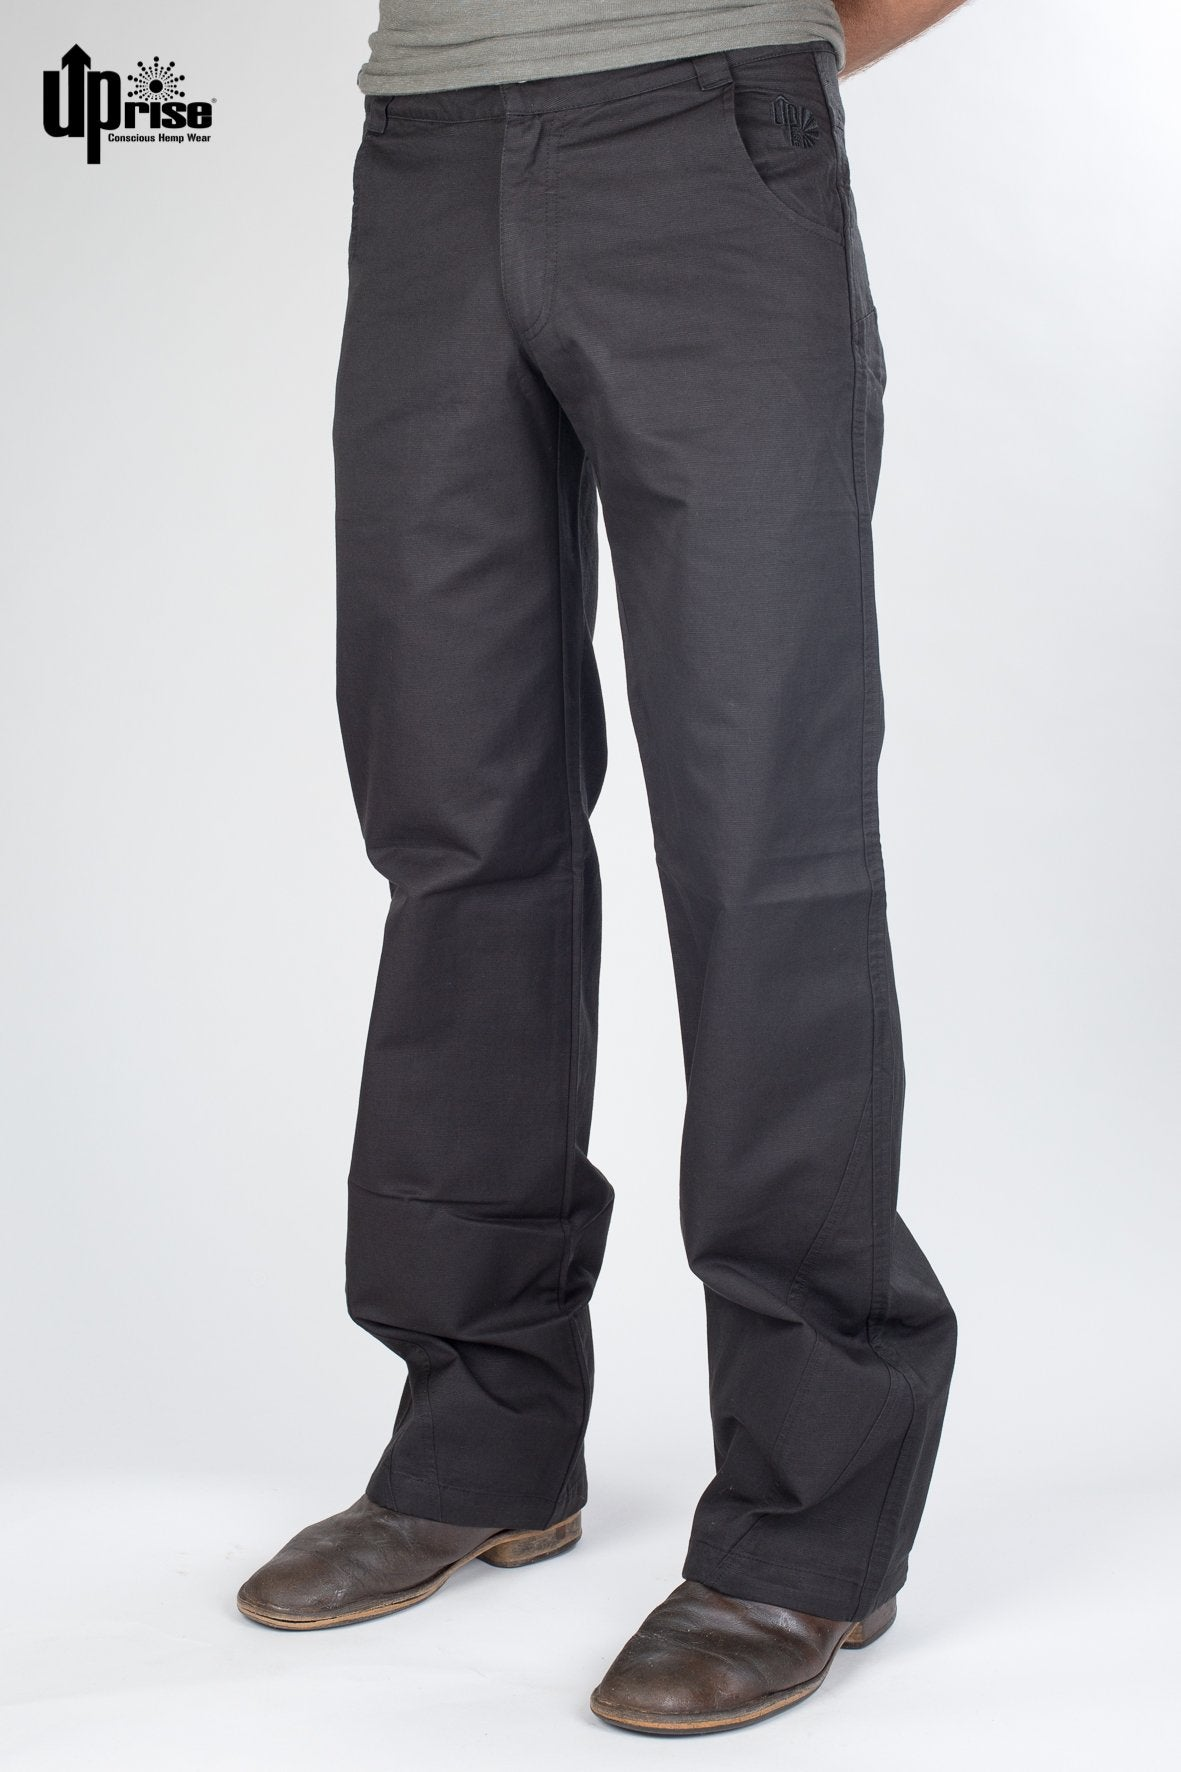 UpRise - Men's Pants Black